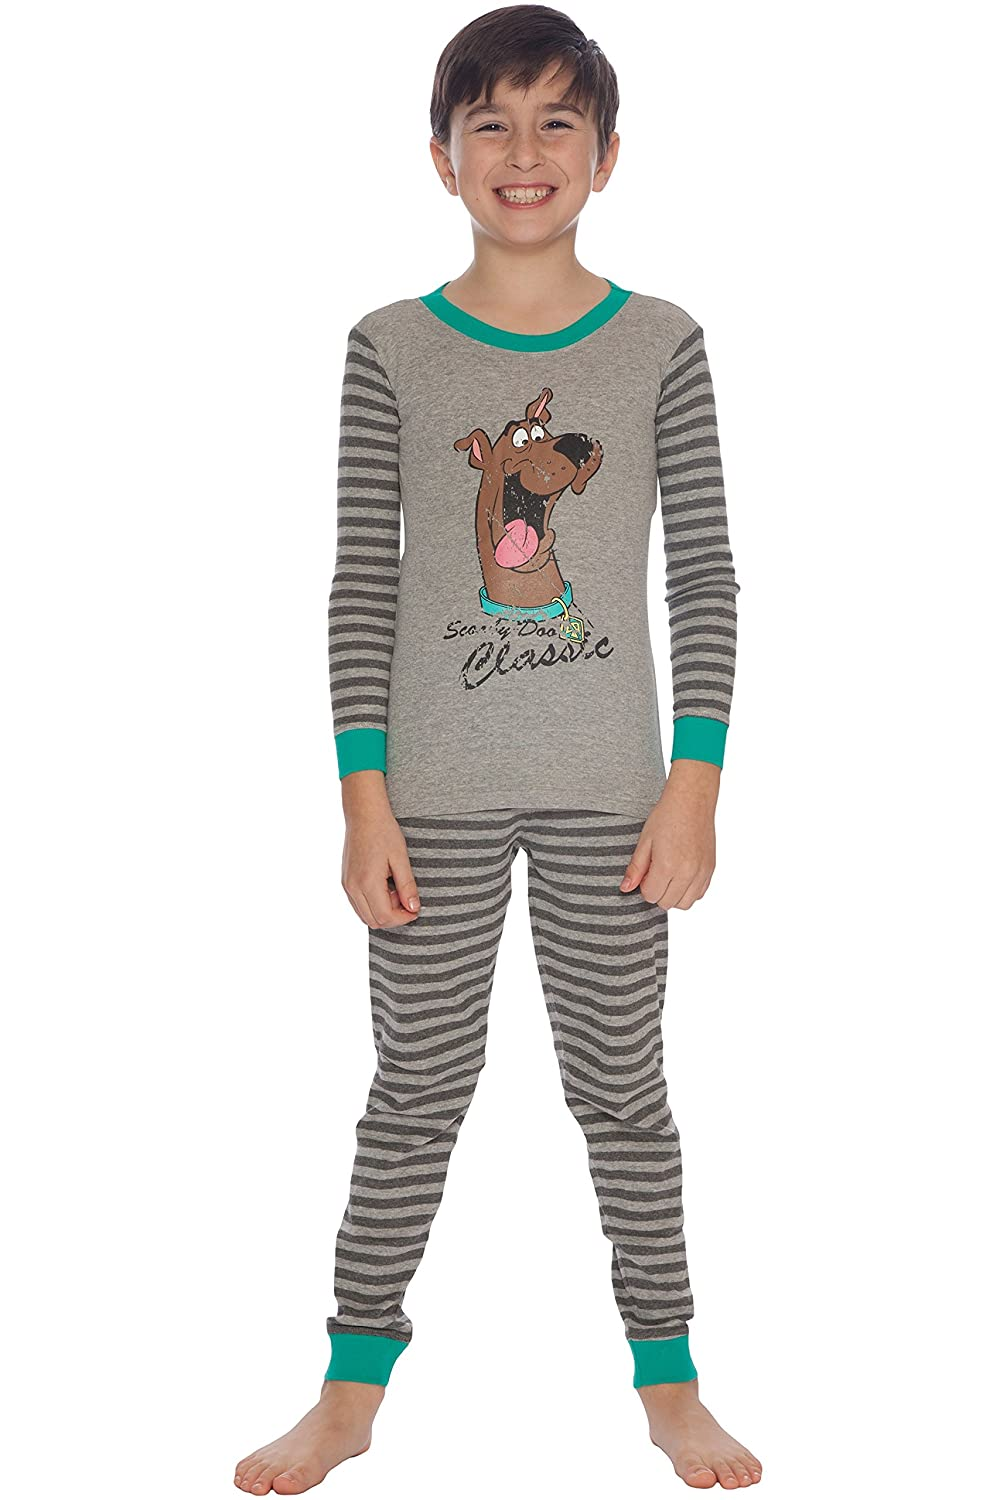 2e918b1b4a Amazon.com  Scooby Doo Boys  Vintage Pajama Set  Clothing